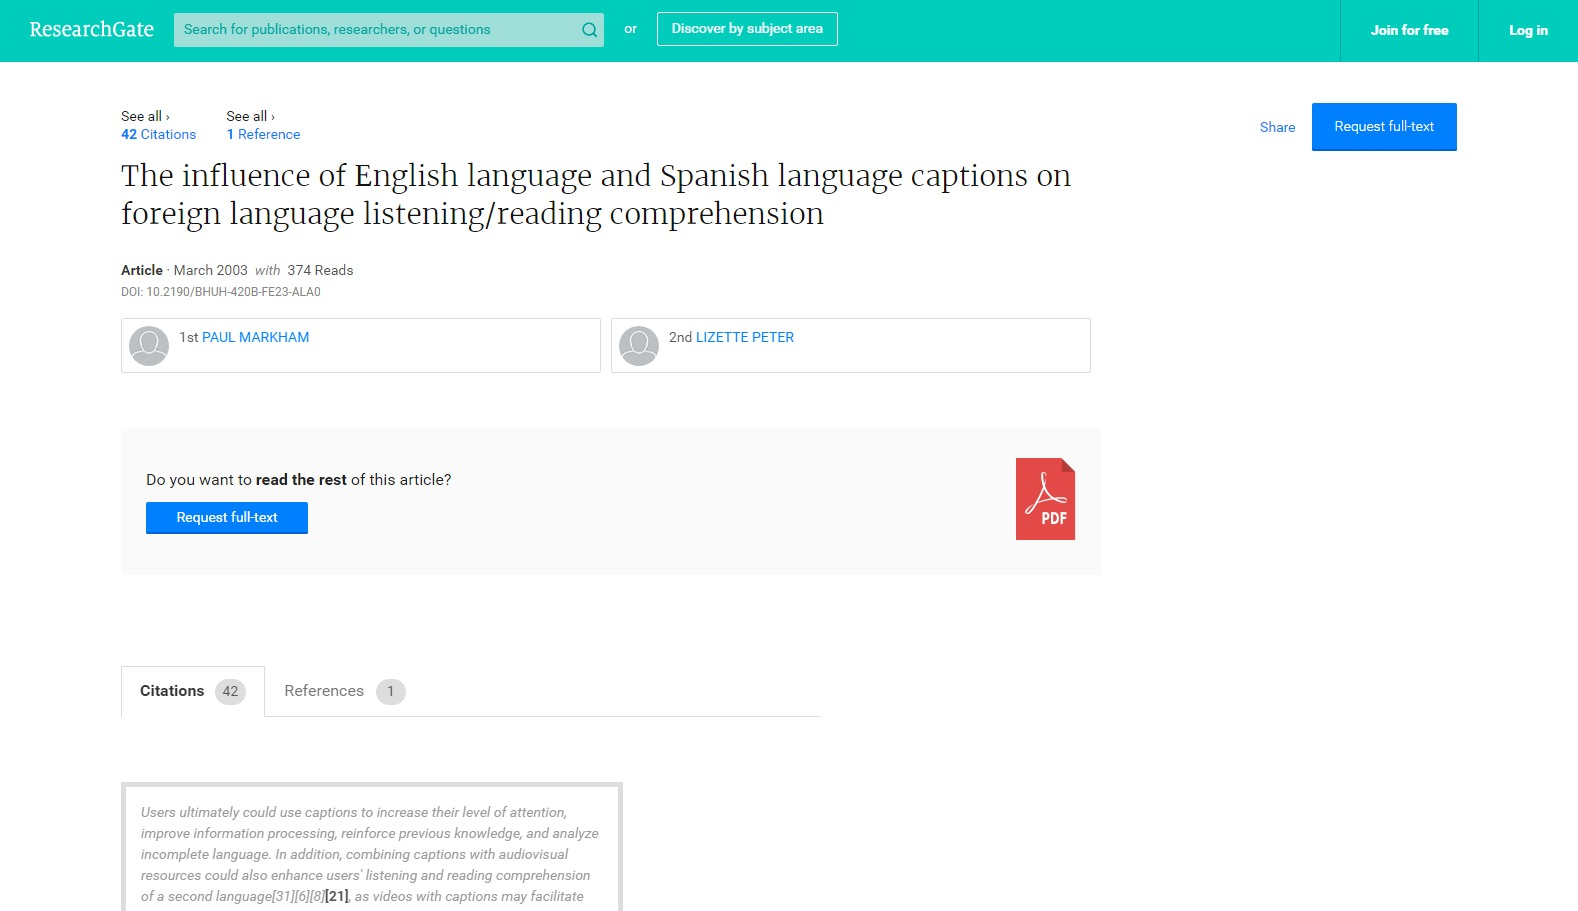 The Influence of English Language and Spanish Language Captions on Foreign Language Listening/Reading Comprehension